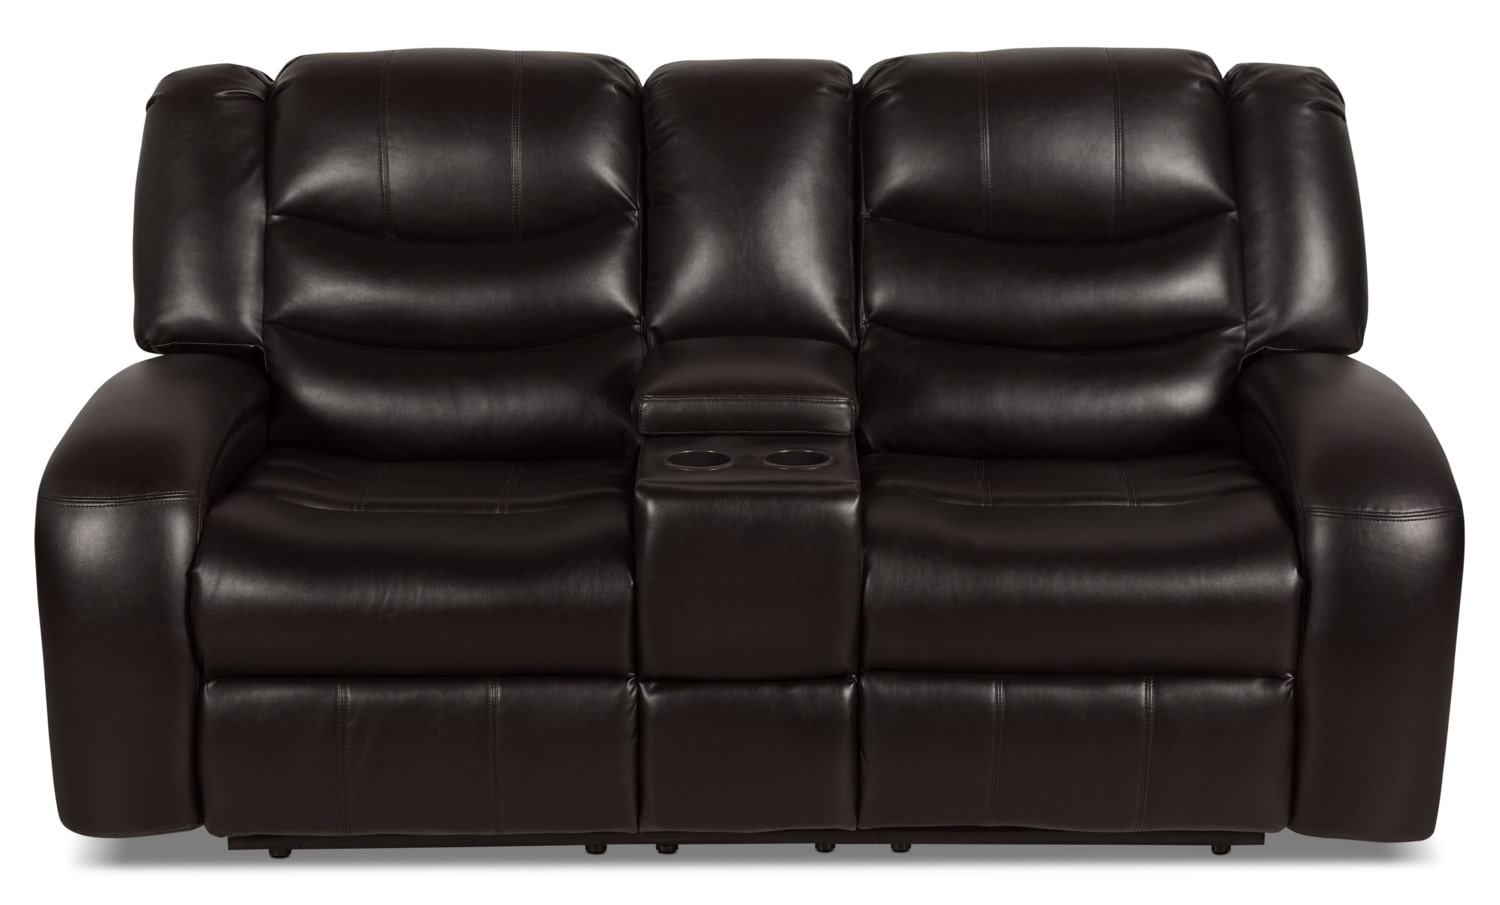 Angus Leather Look Fabric Reclining Sofa Dark Brown